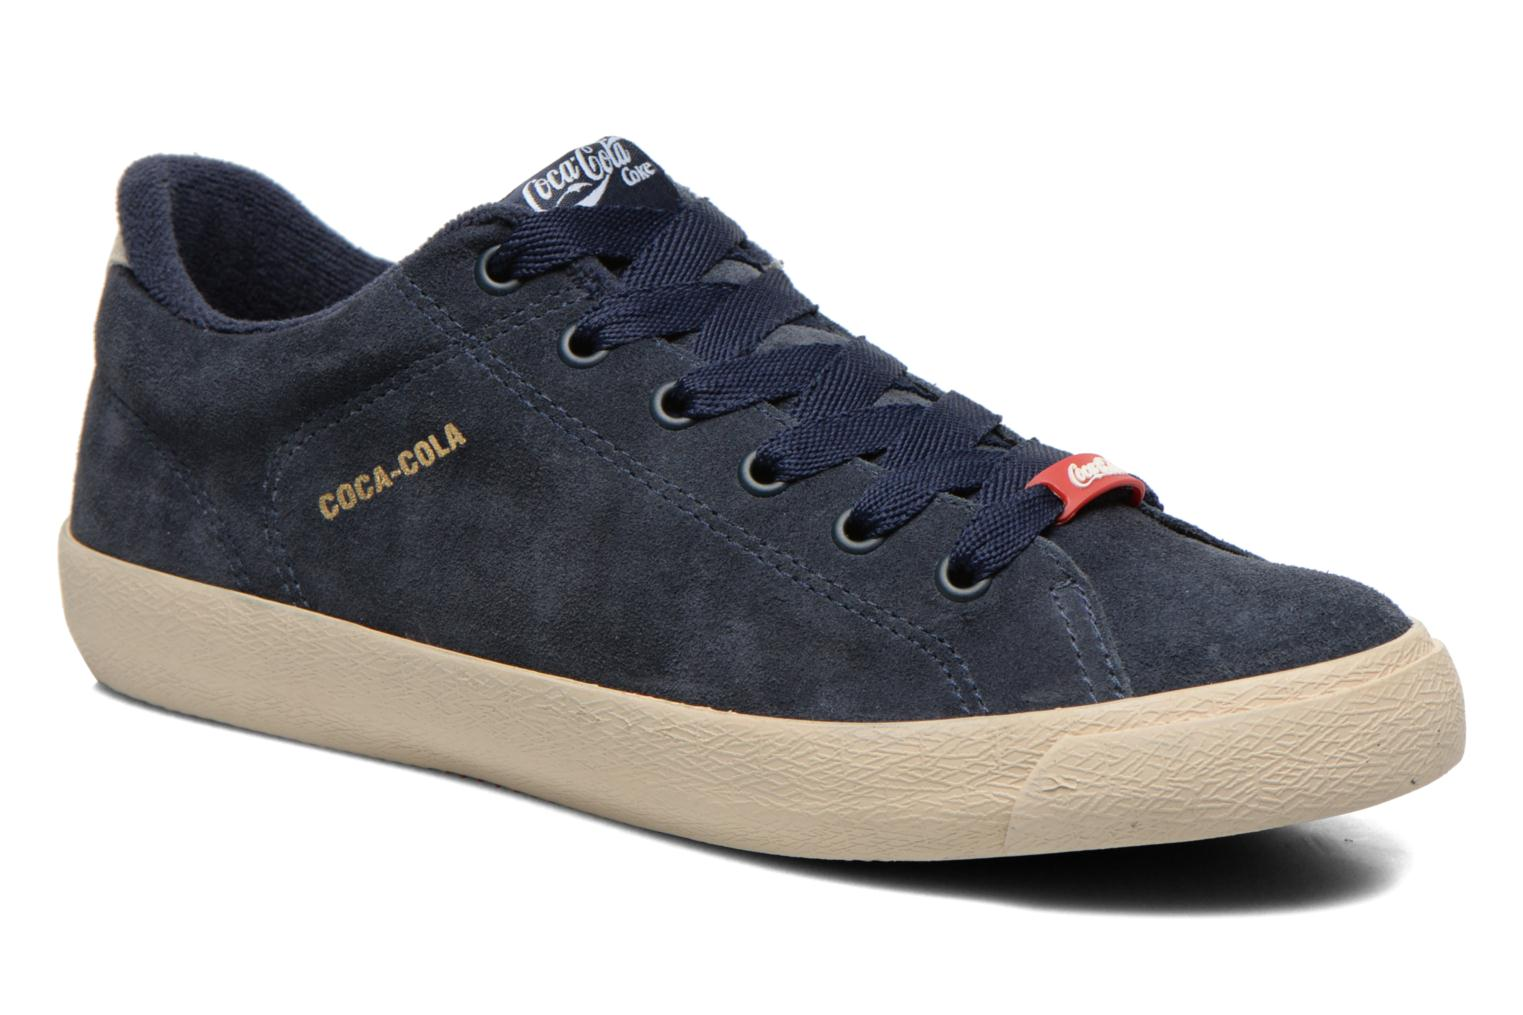 Sneakers Asteca Suede by Coca-cola shoes